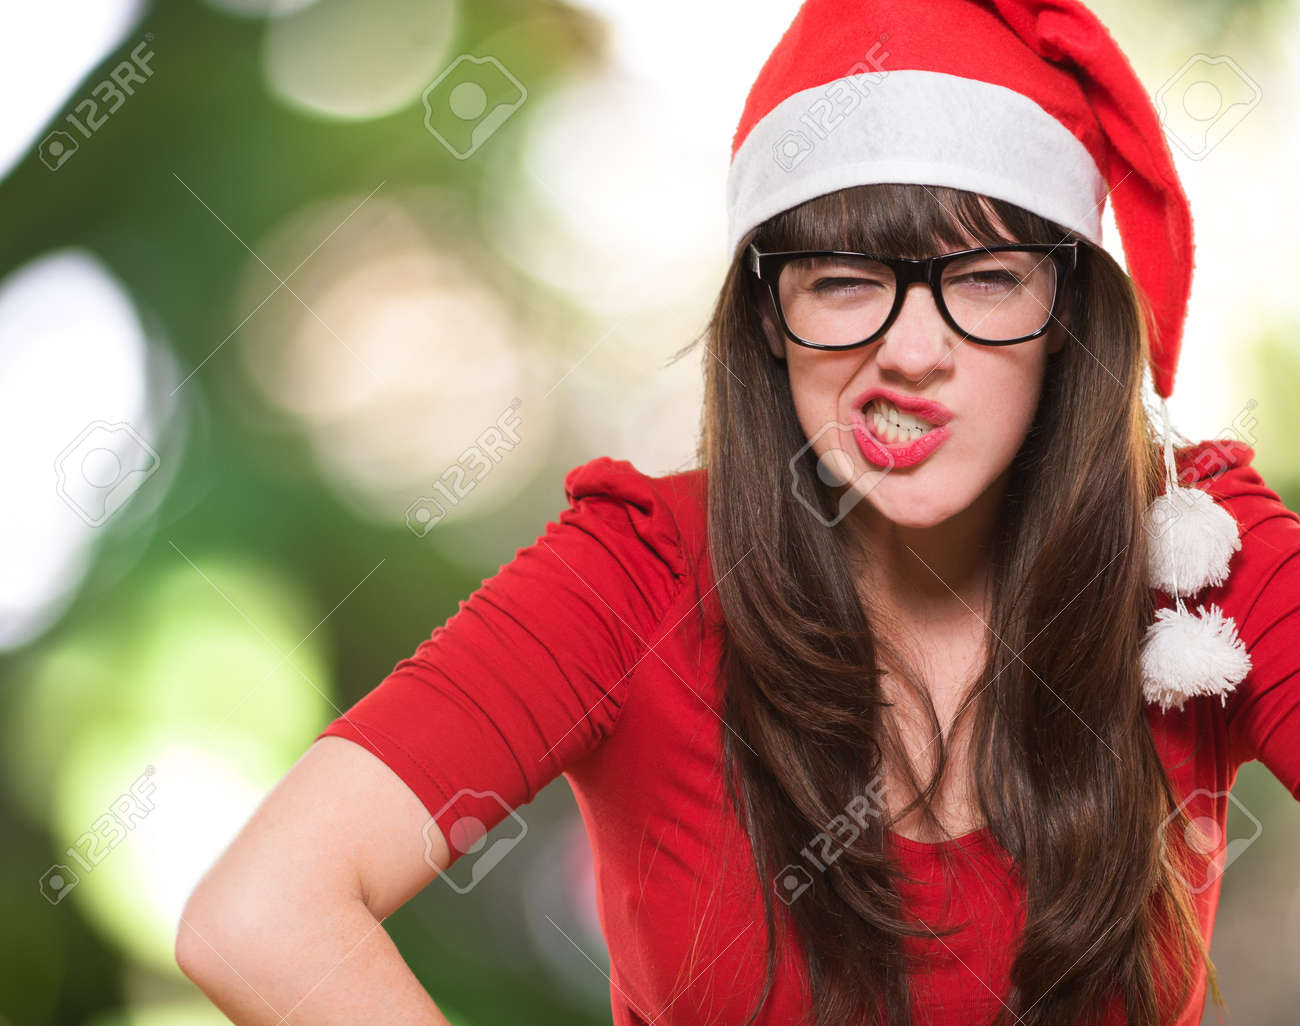 angry christmas woman wearing glasses against a nature background Stock Photo - 16290677